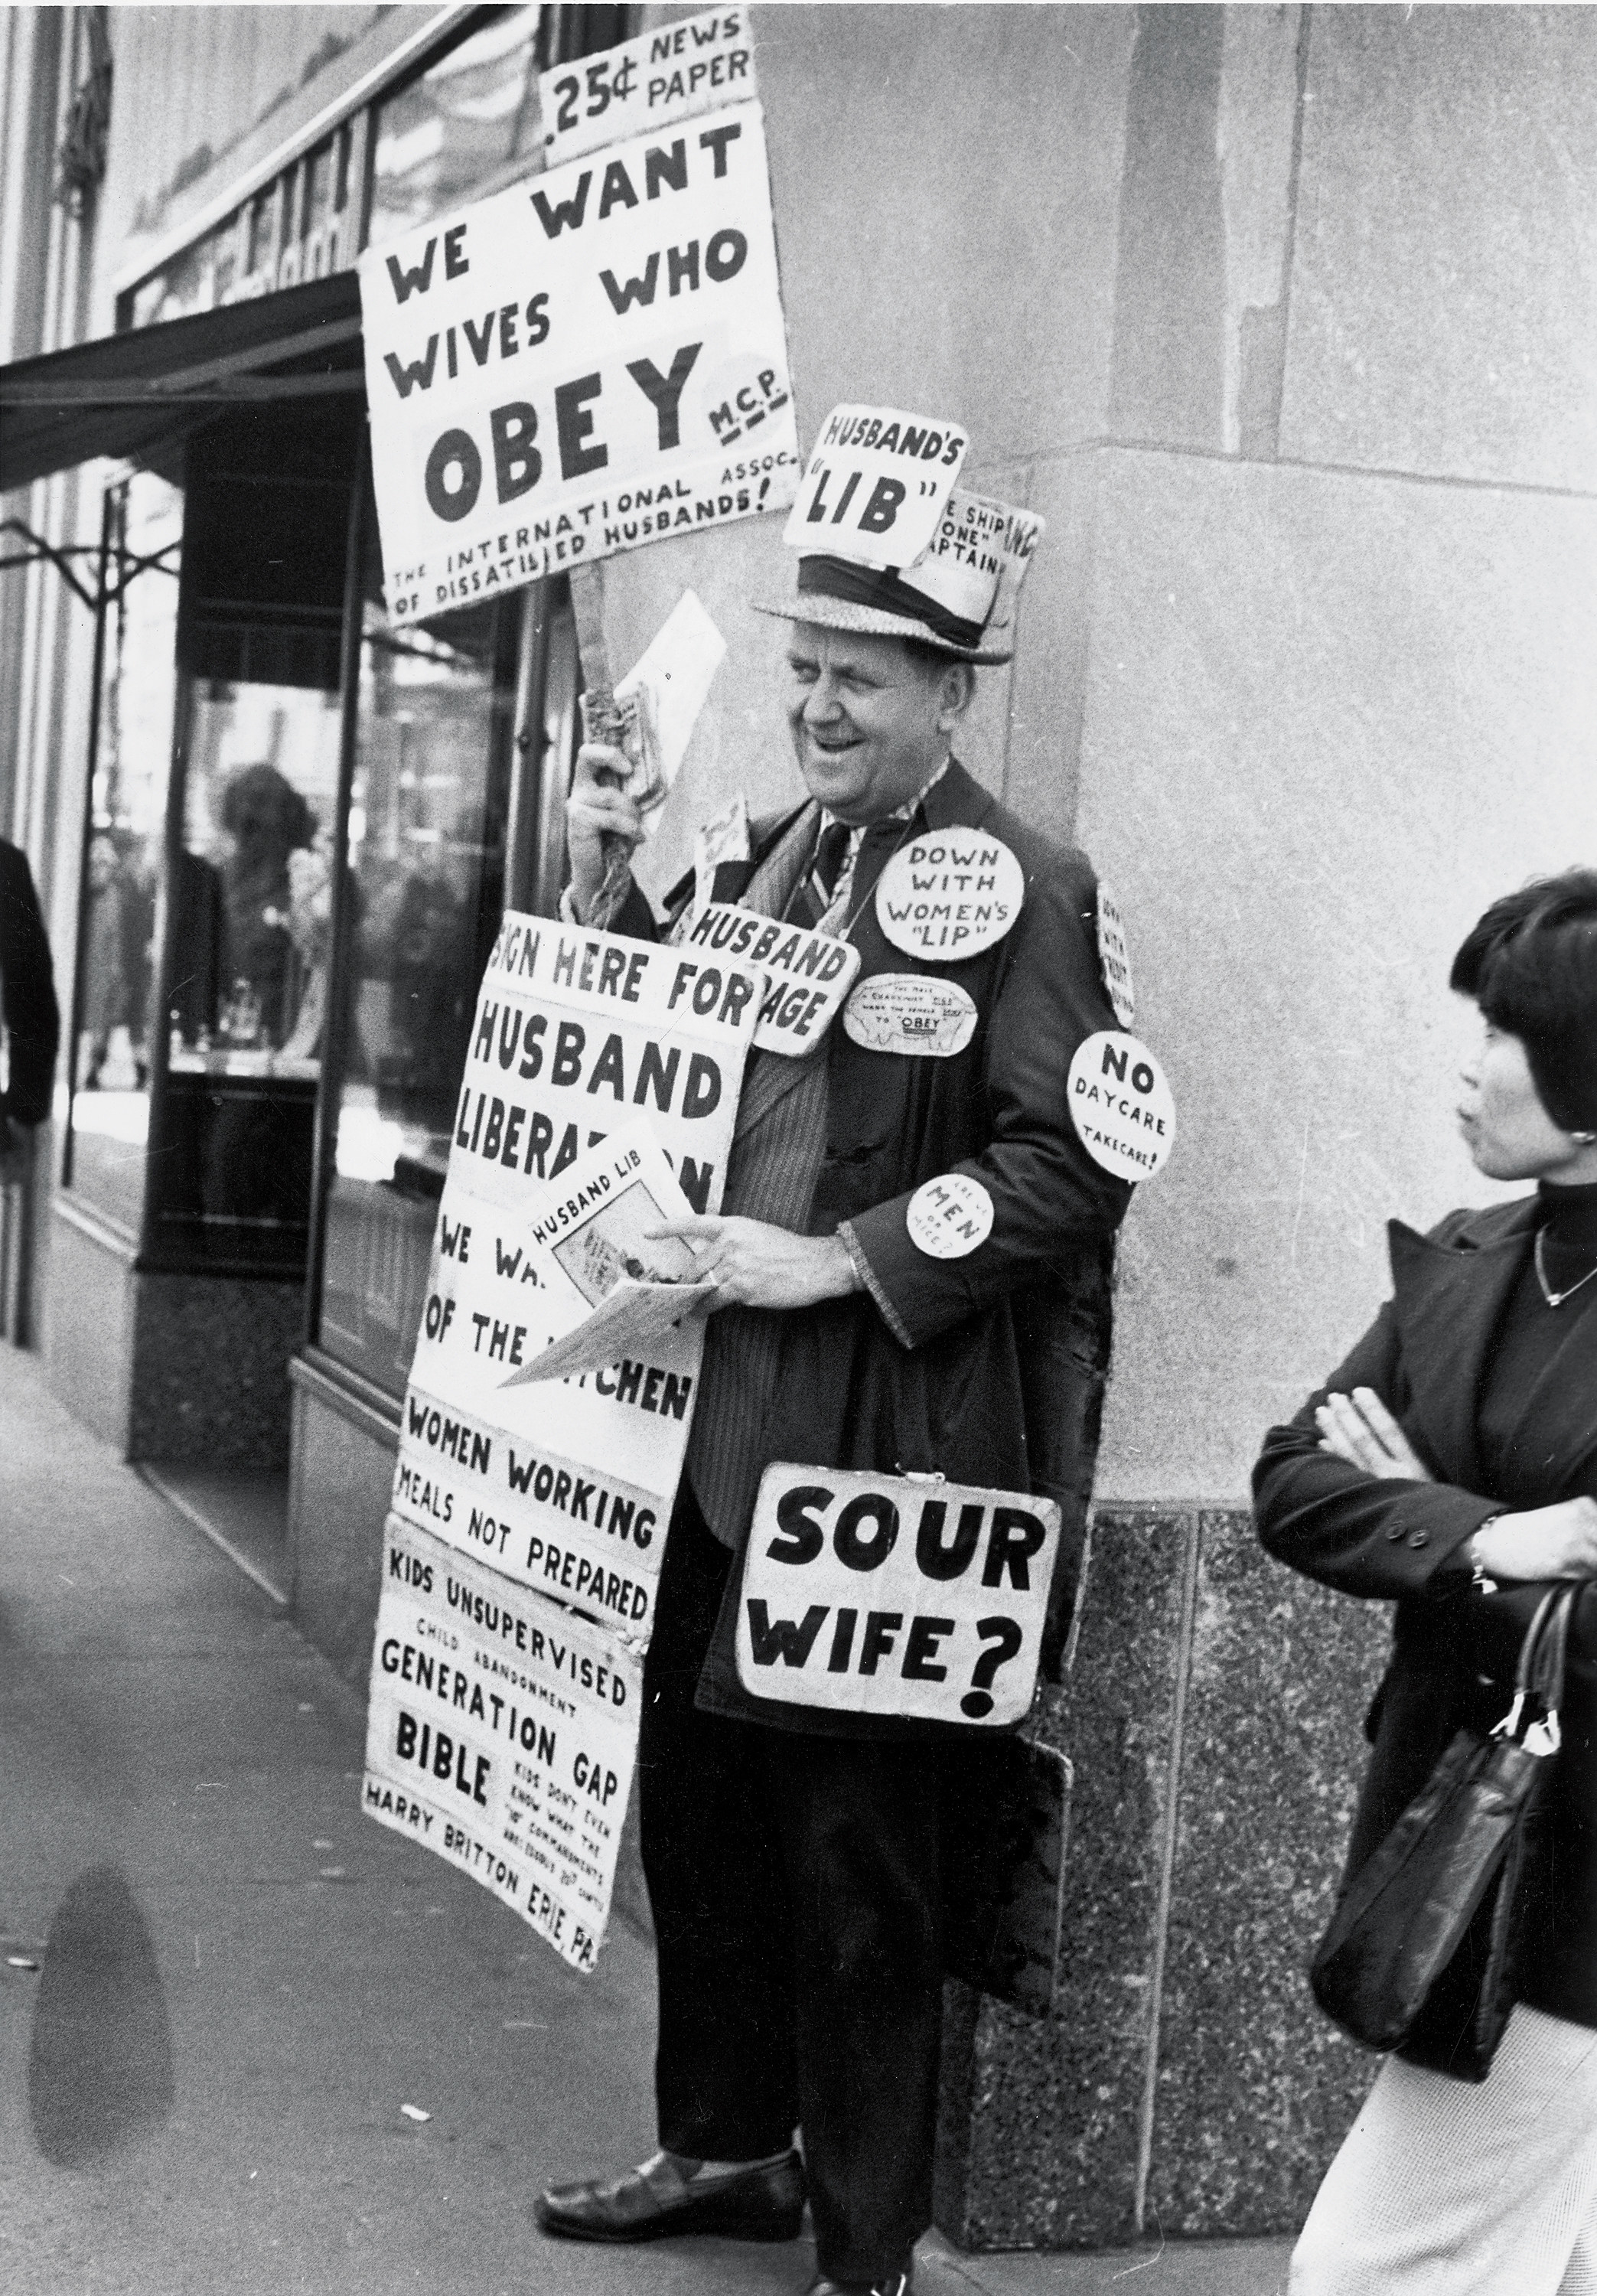 A man holding multiple signs including one that says sour wife with a question mark